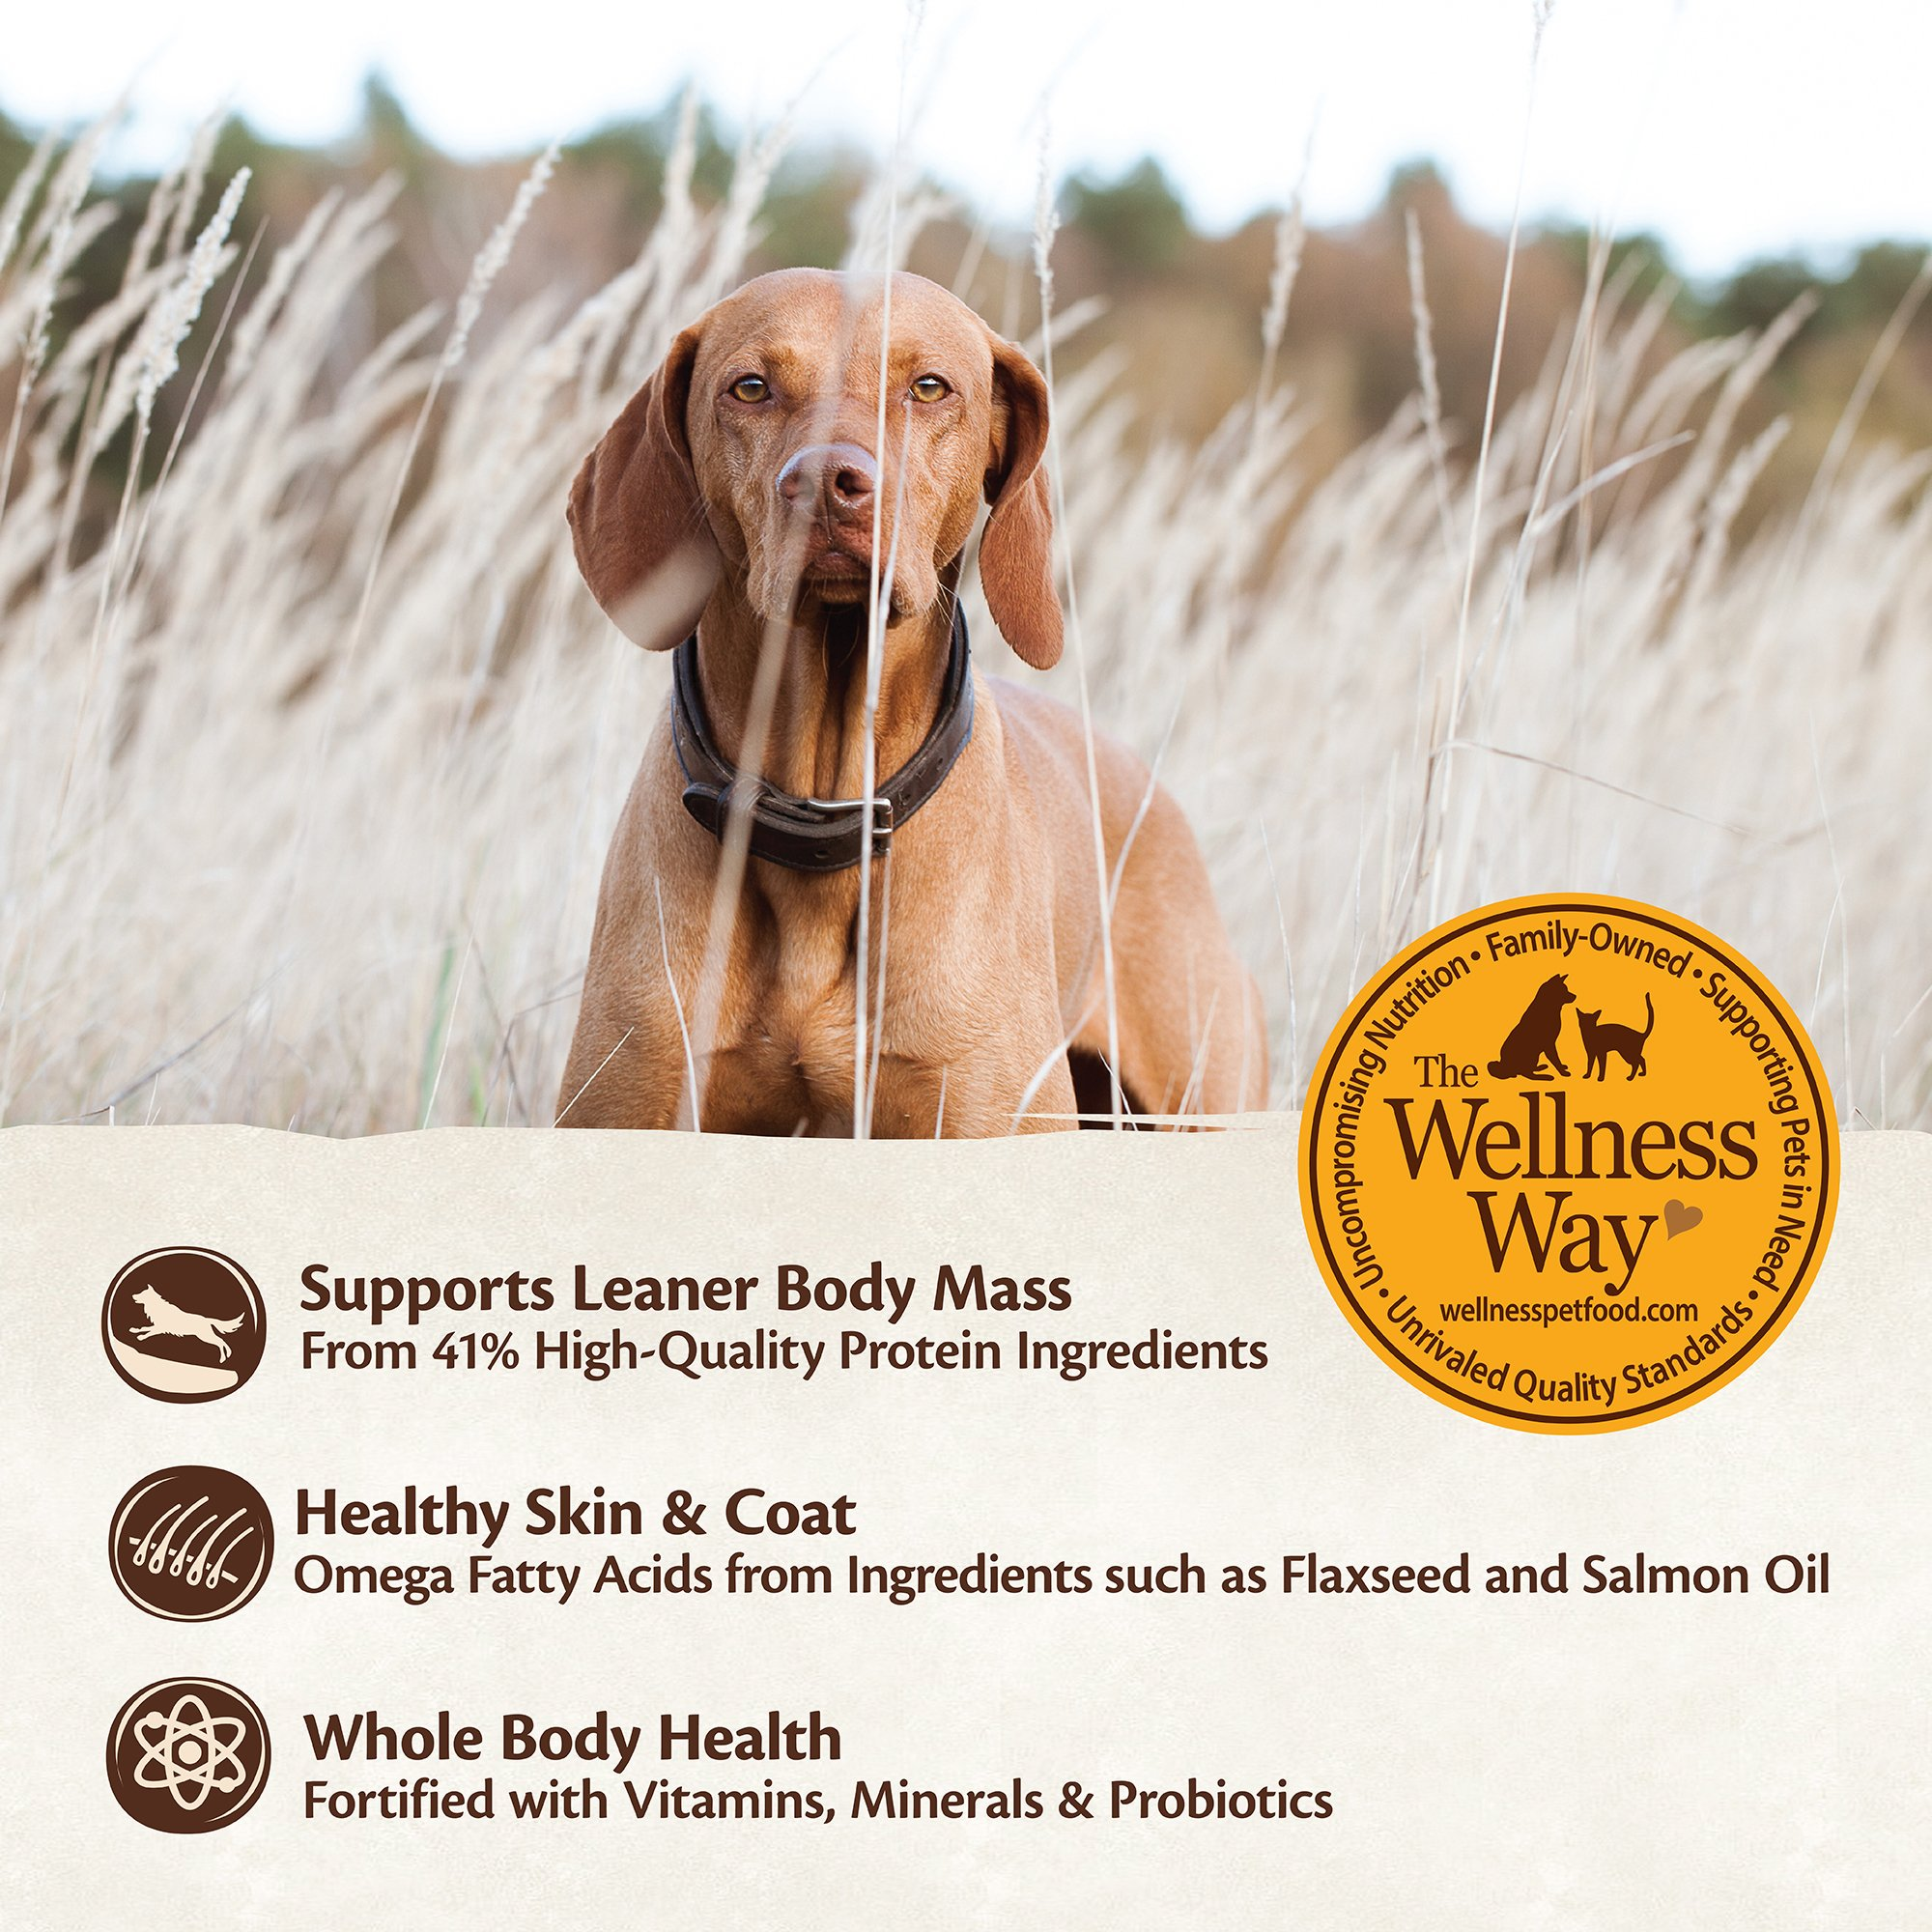 Wellness CORE Natural Grain Free Dry Dog Food, Puppy, 26-Pound Bag by WELLNESS CORE (Image #5)